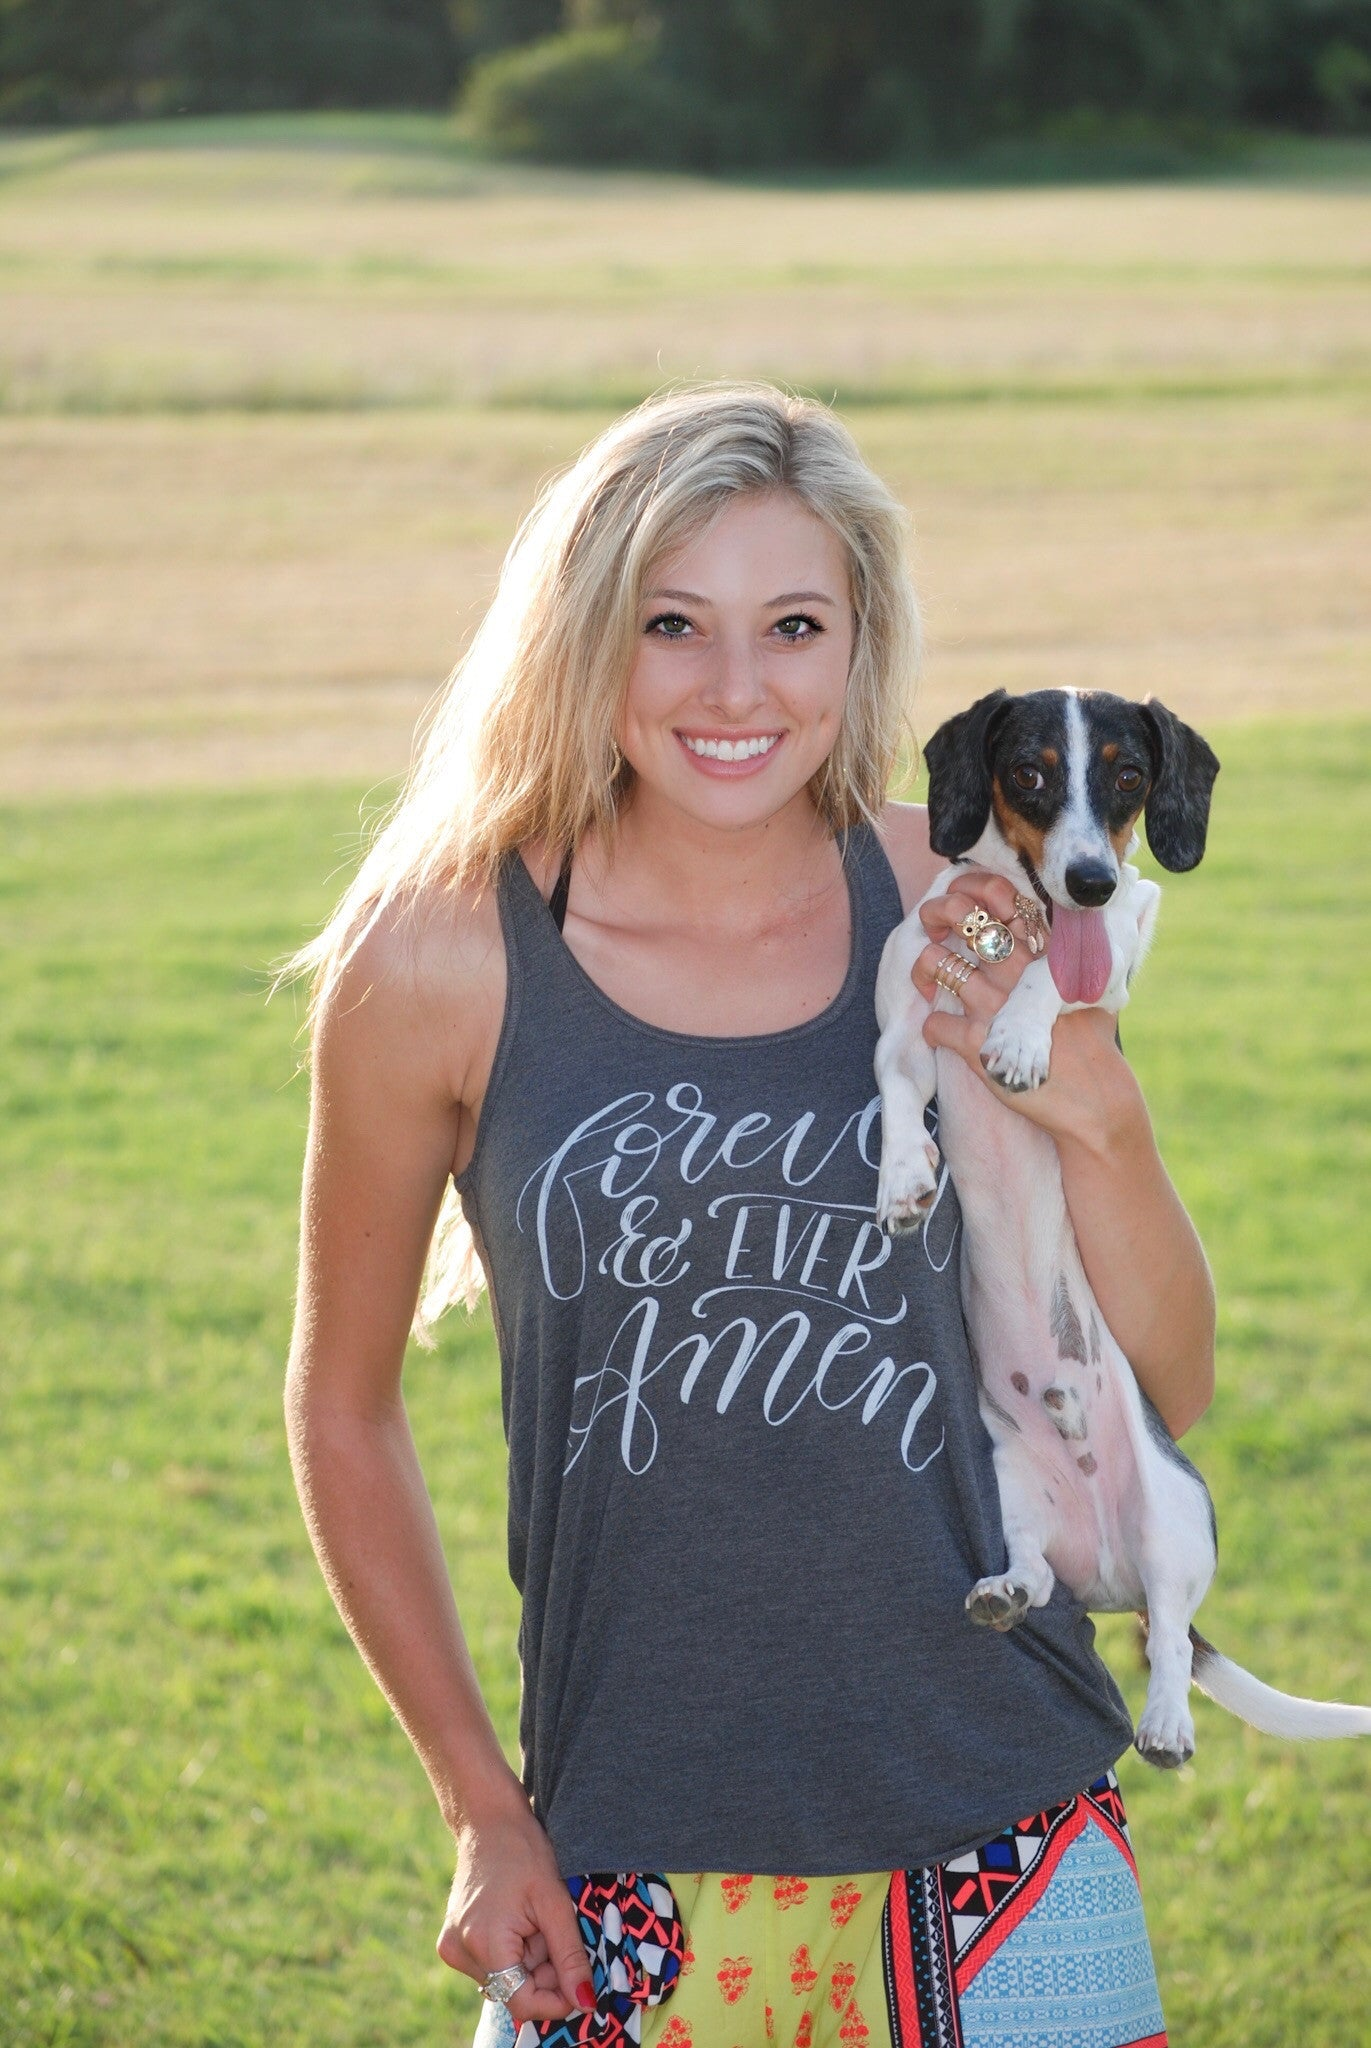 Forever and Ever Amen | Flowy Racerback Tank